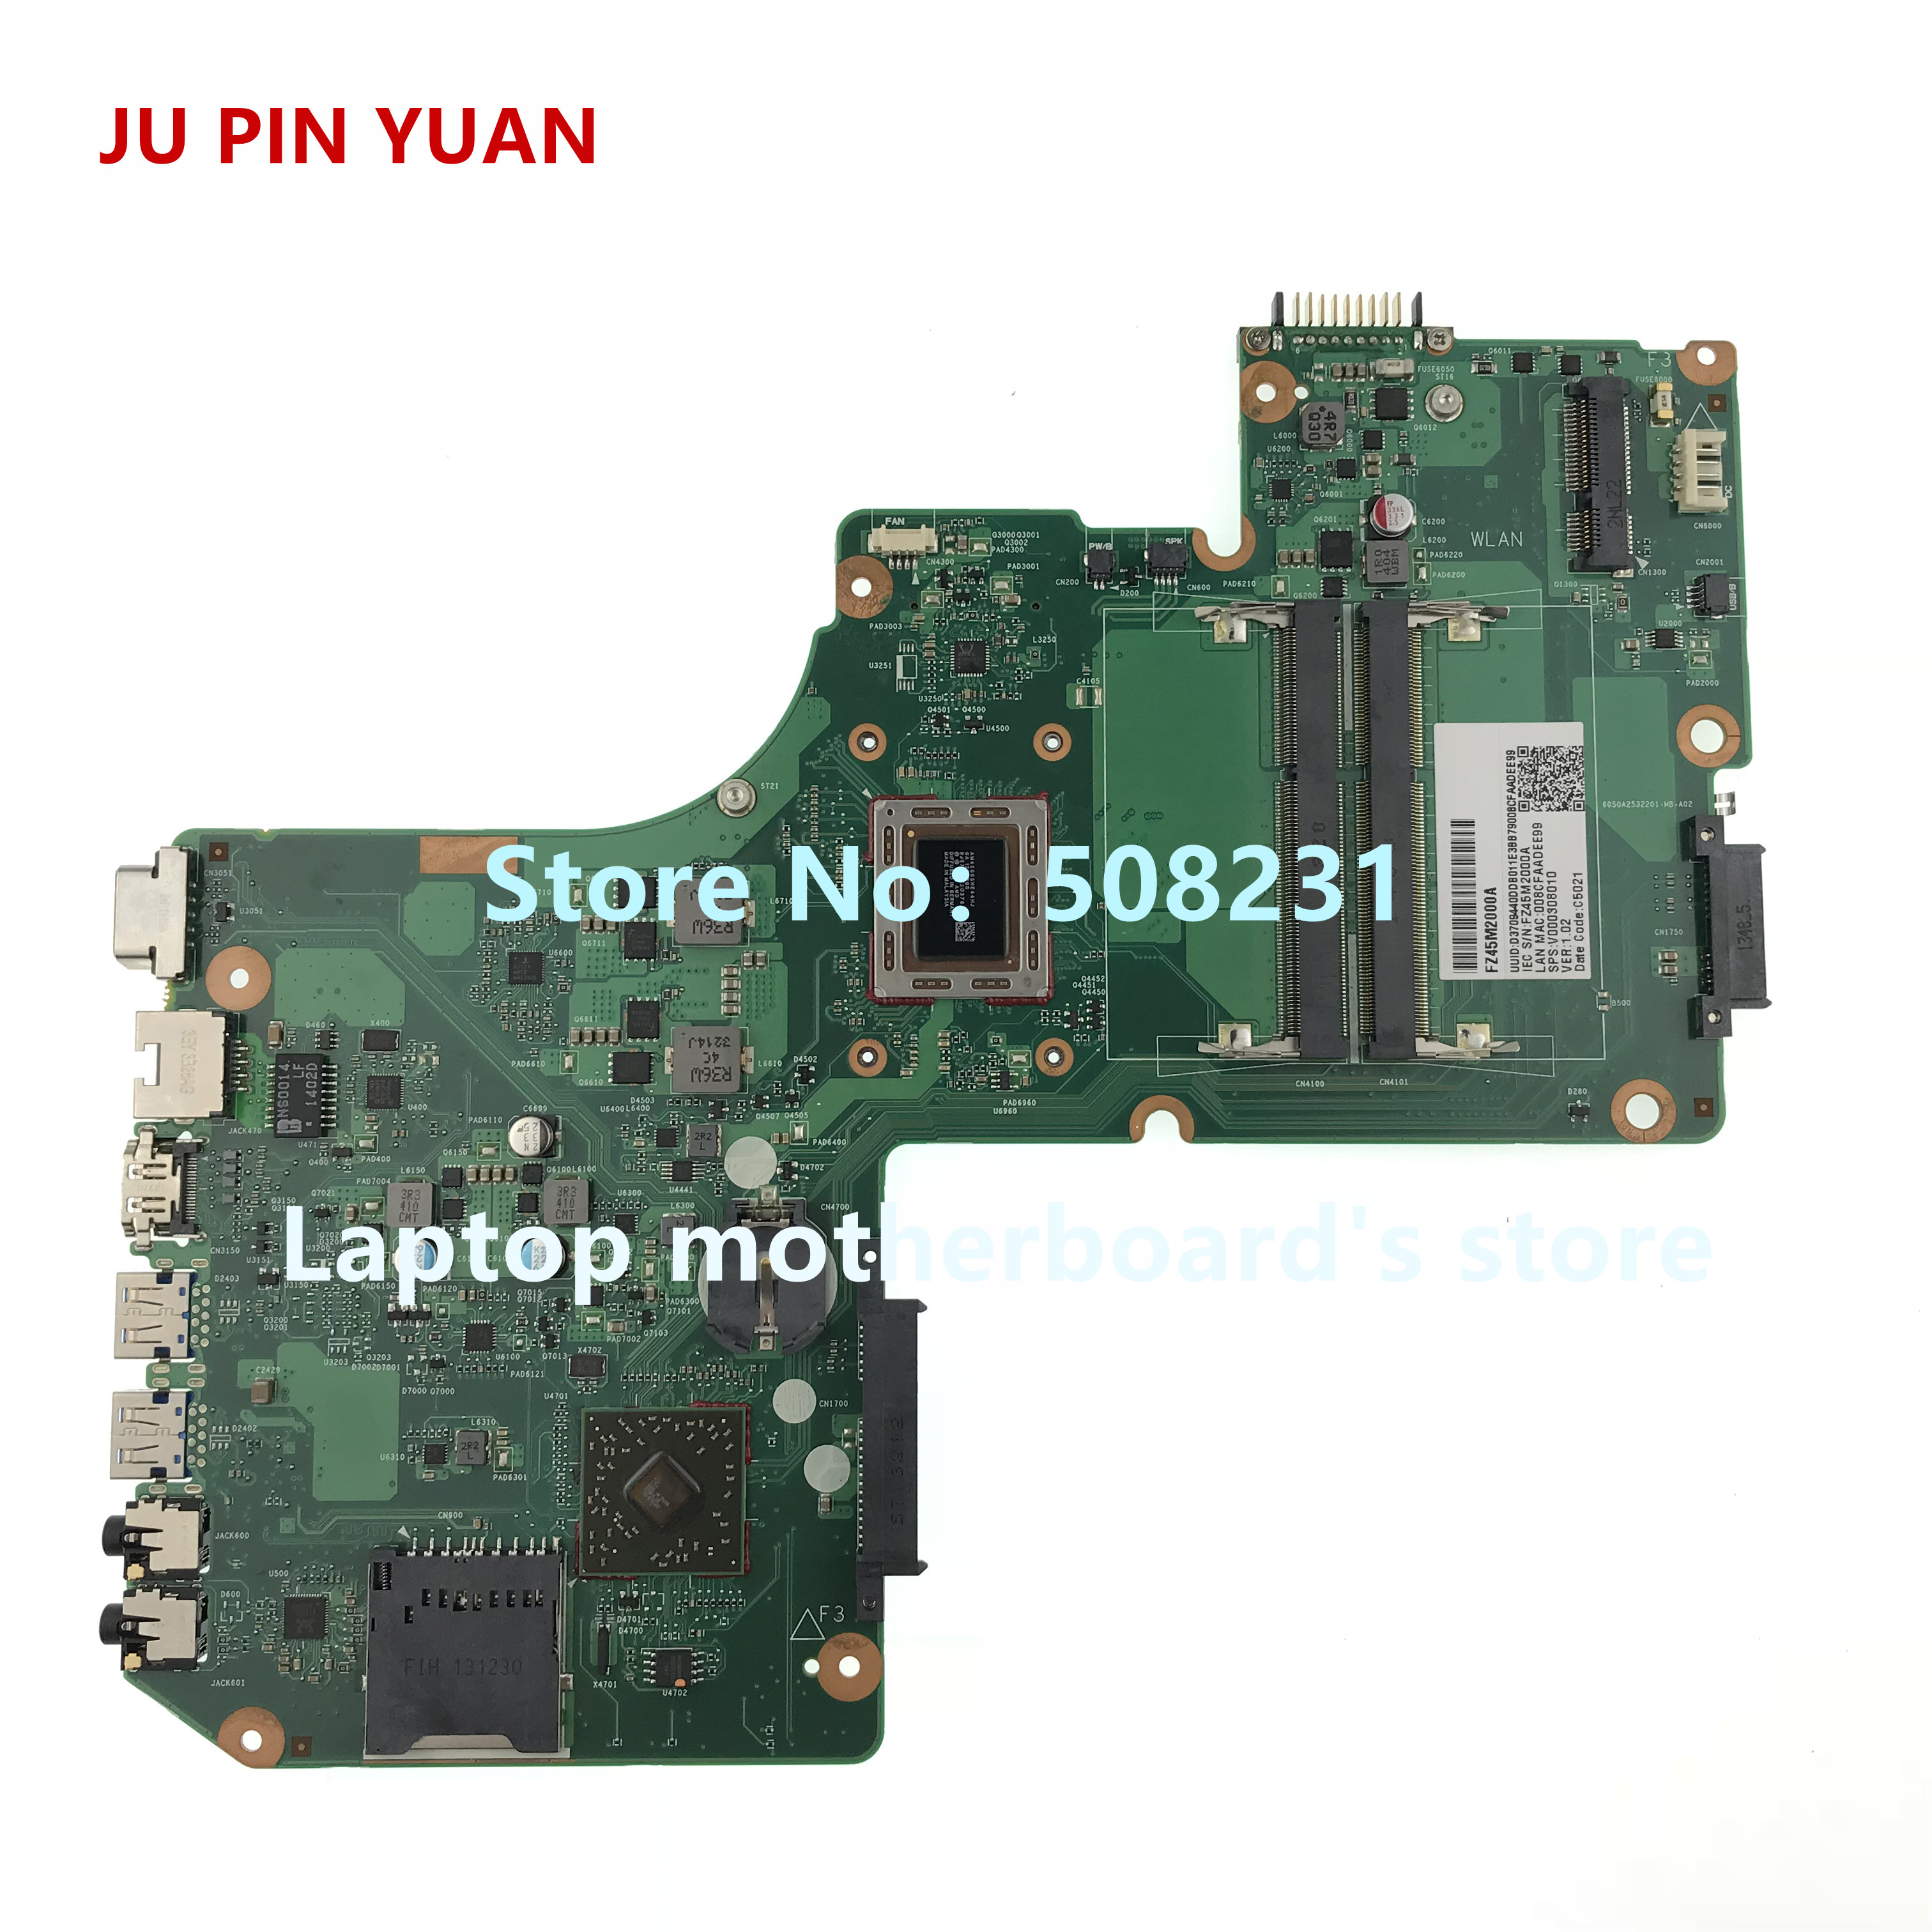 JU PIN YUAN V000308010 mainboard for Toshiba Satellite L950D L955D laptop motherboard with A8-4555M 1.6Ghz CPU JU PIN YUAN V000308010 mainboard for Toshiba Satellite L950D L955D laptop motherboard with A8-4555M 1.6Ghz CPU